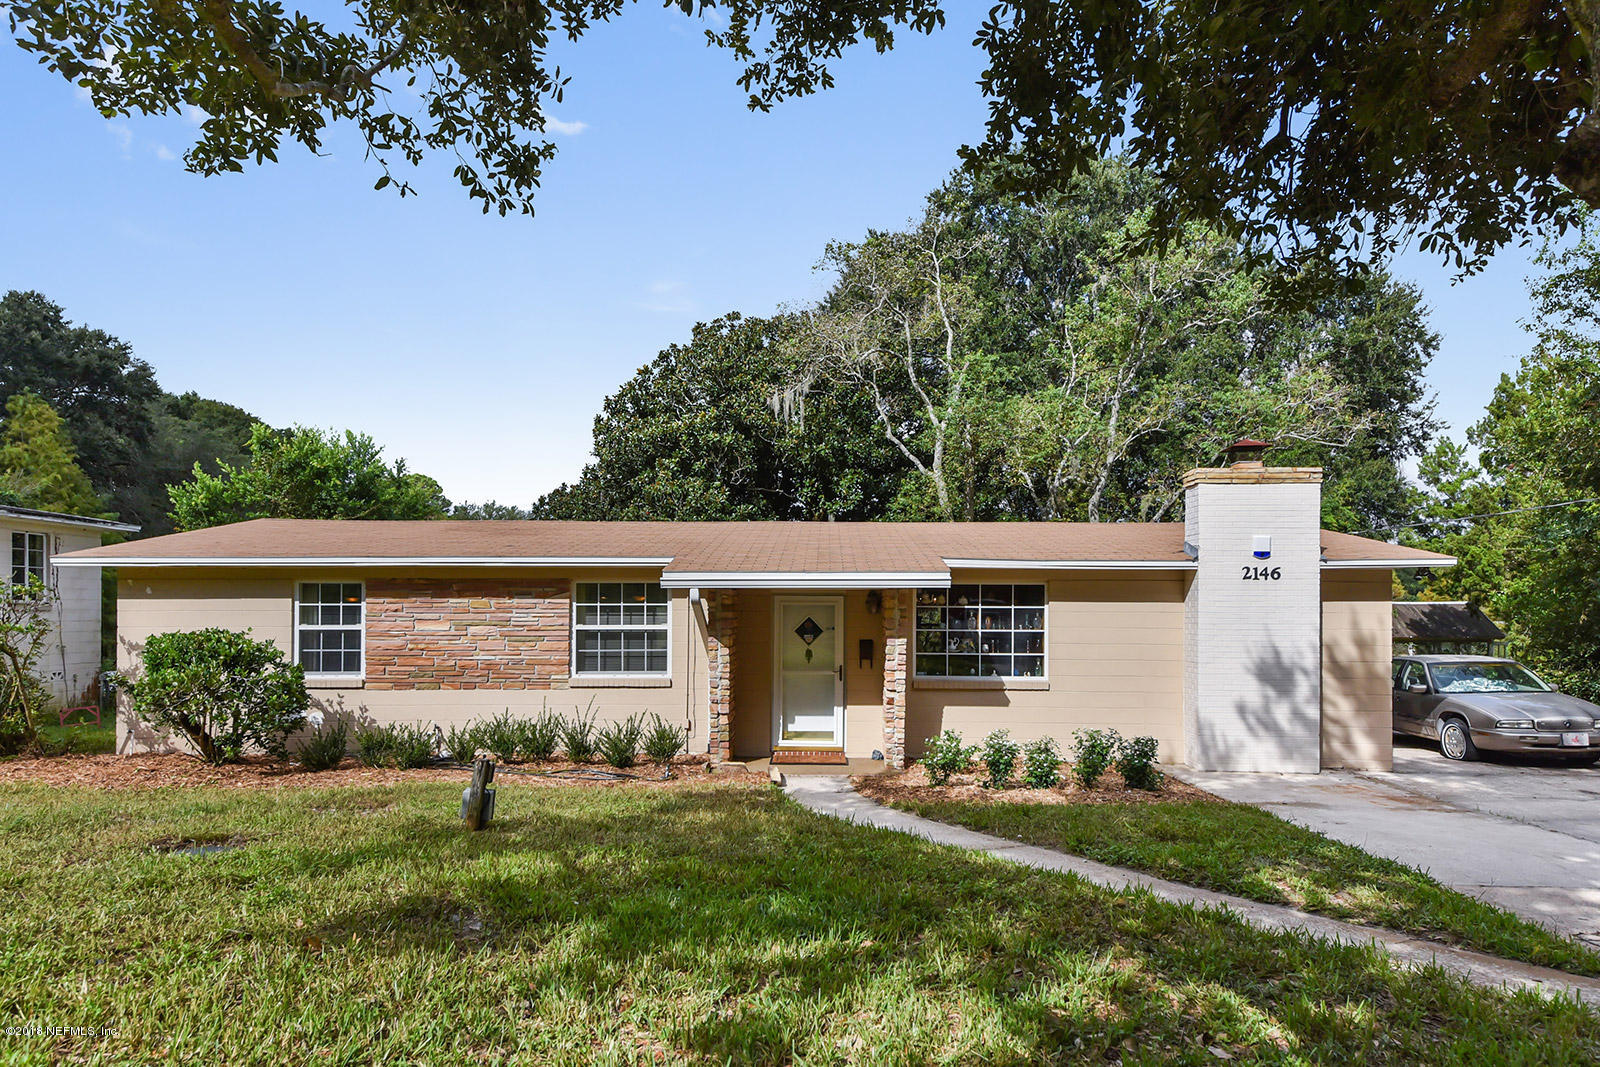 2146 CESERY, JACKSONVILLE, FLORIDA 32211, 3 Bedrooms Bedrooms, ,1 BathroomBathrooms,Residential - single family,For sale,CESERY,959733